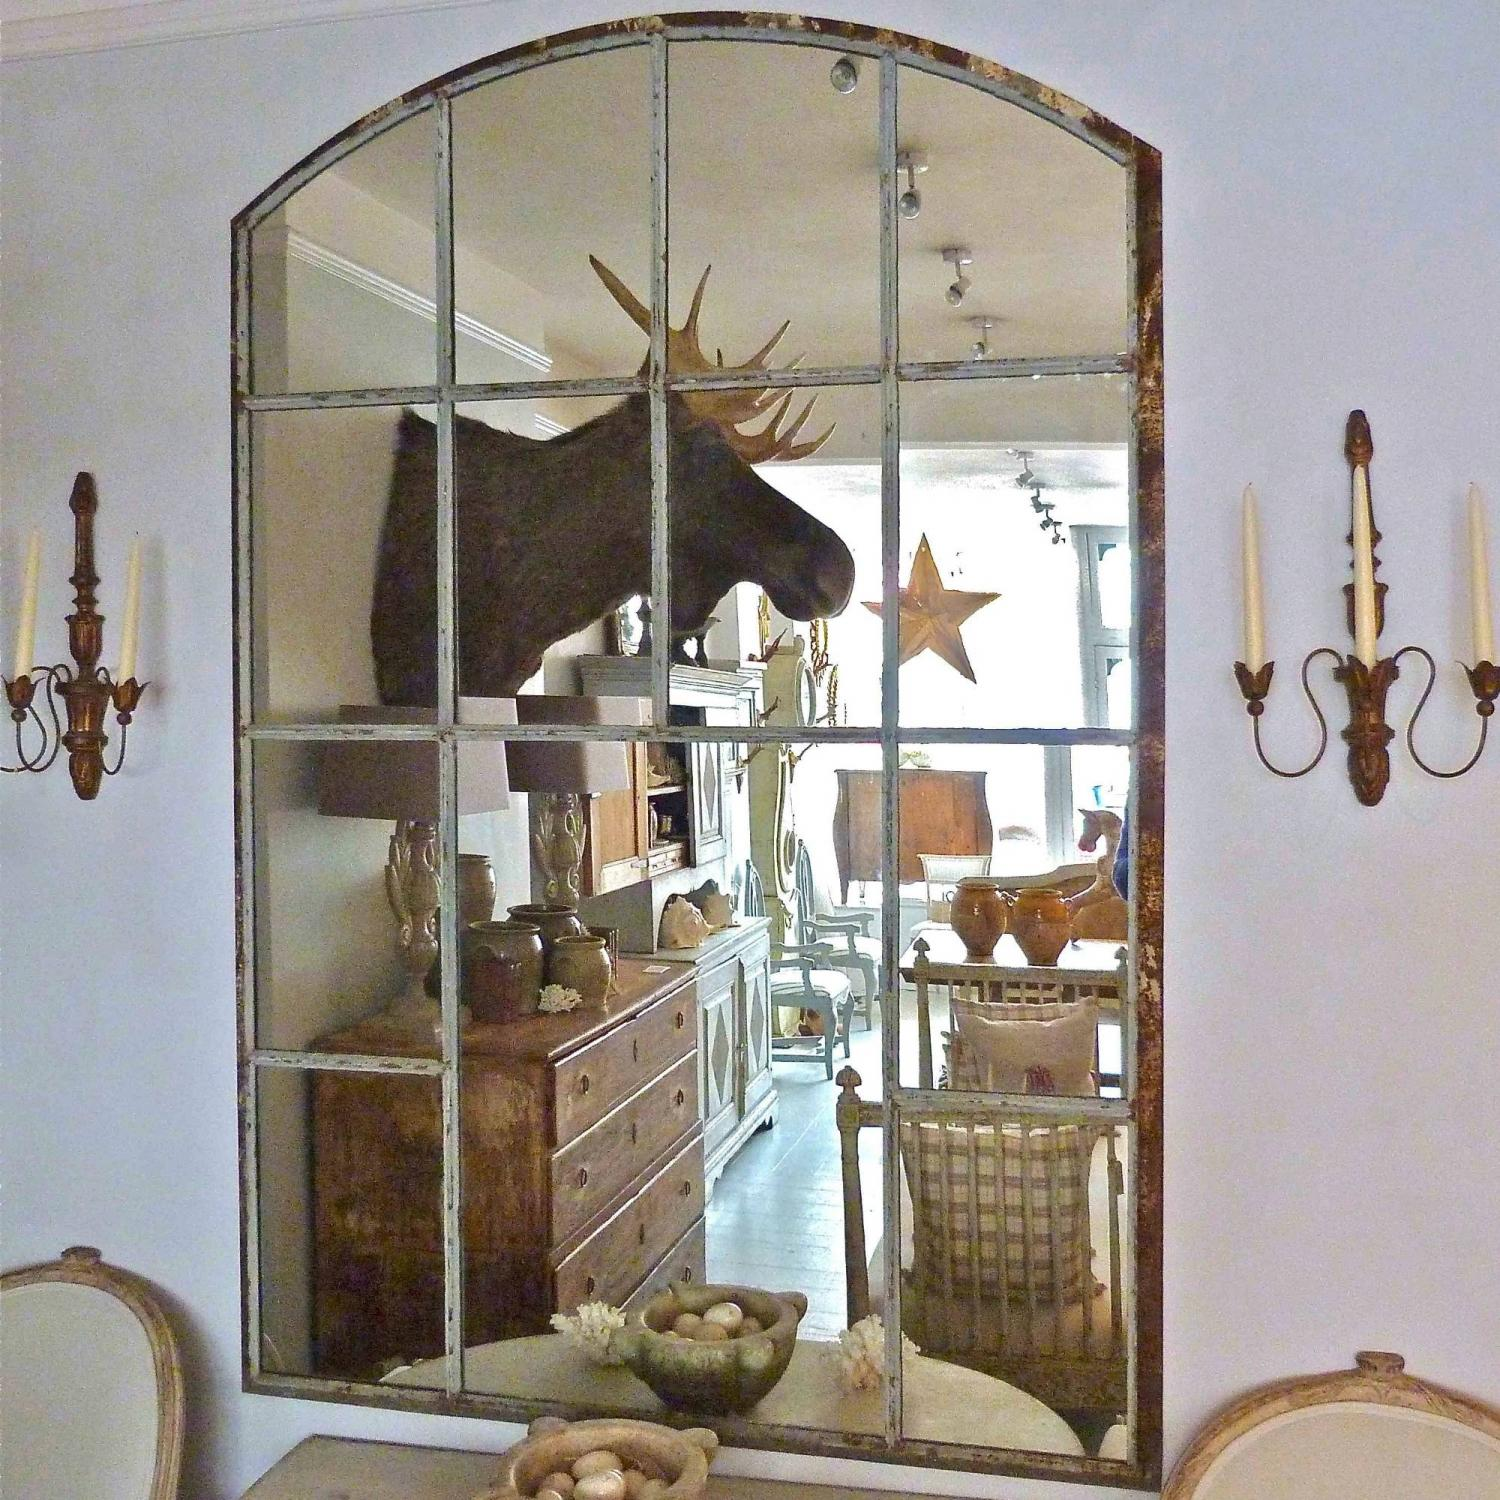 LARGE CAST IRON SLOW ARCHED WINDOW FRAME MIRROR